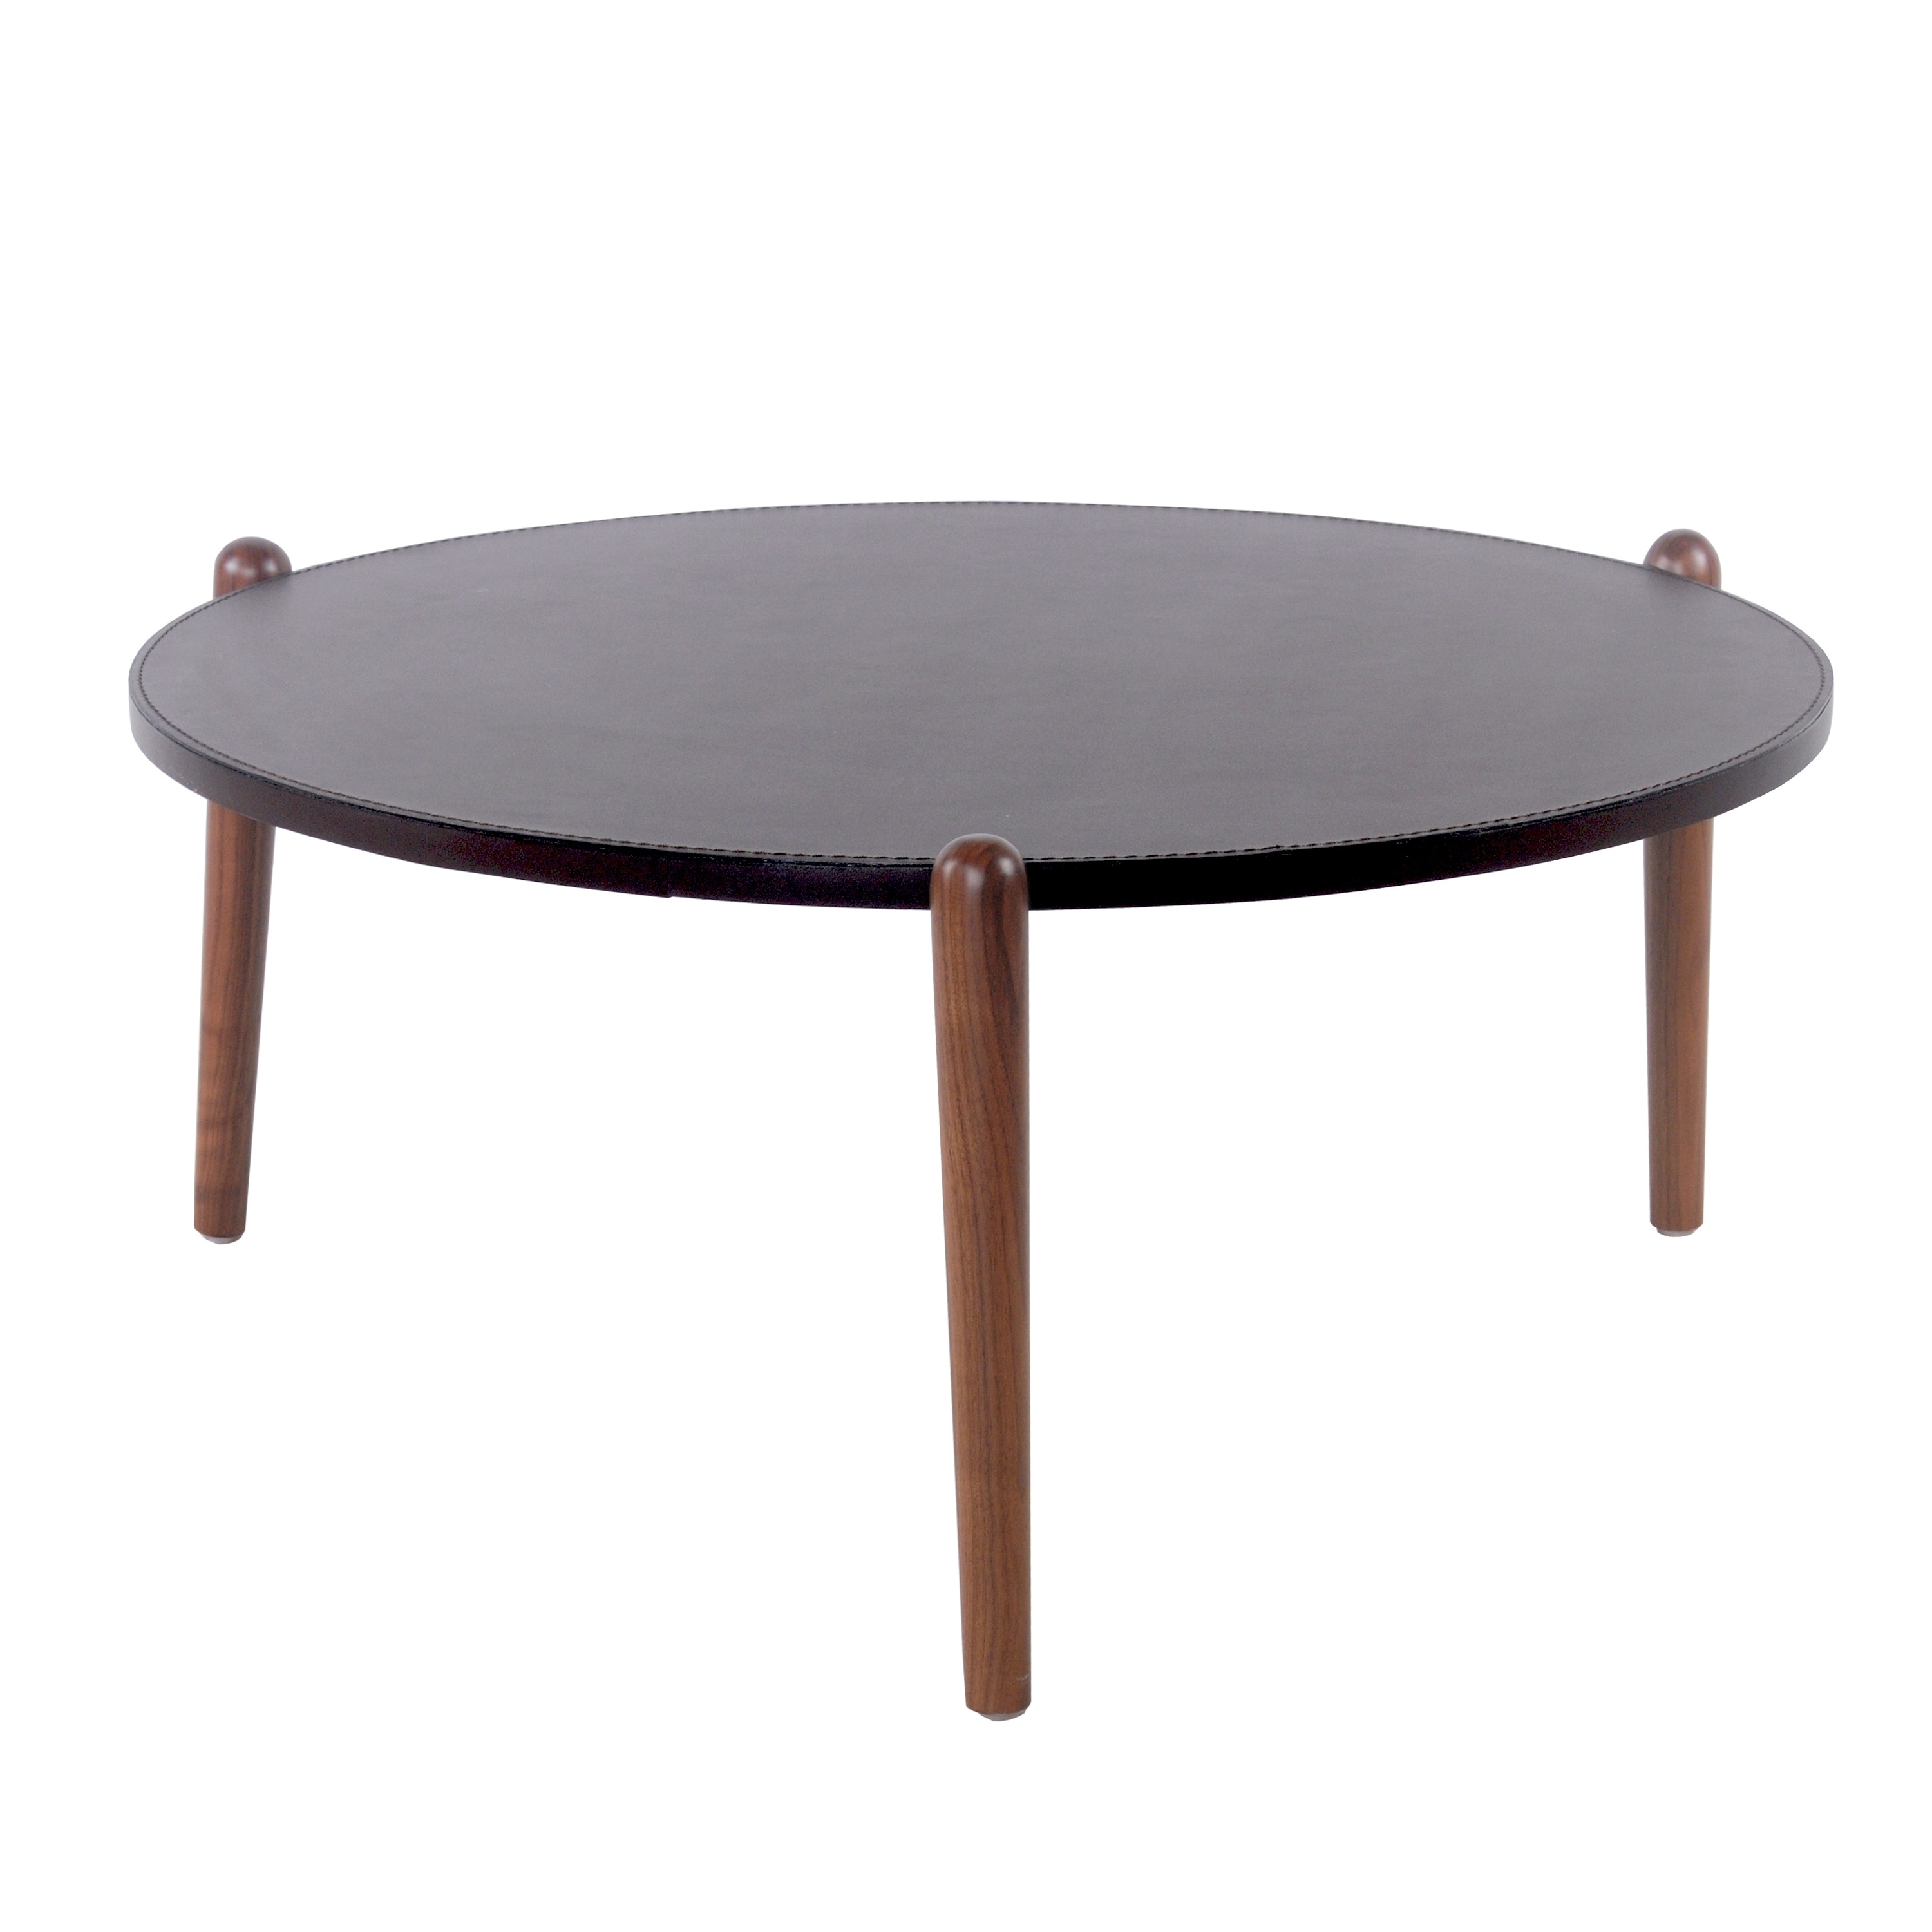 Farren Brown Recycled Leather Round Coffee Table With Walnut Legs Free Shipping Today 16326438